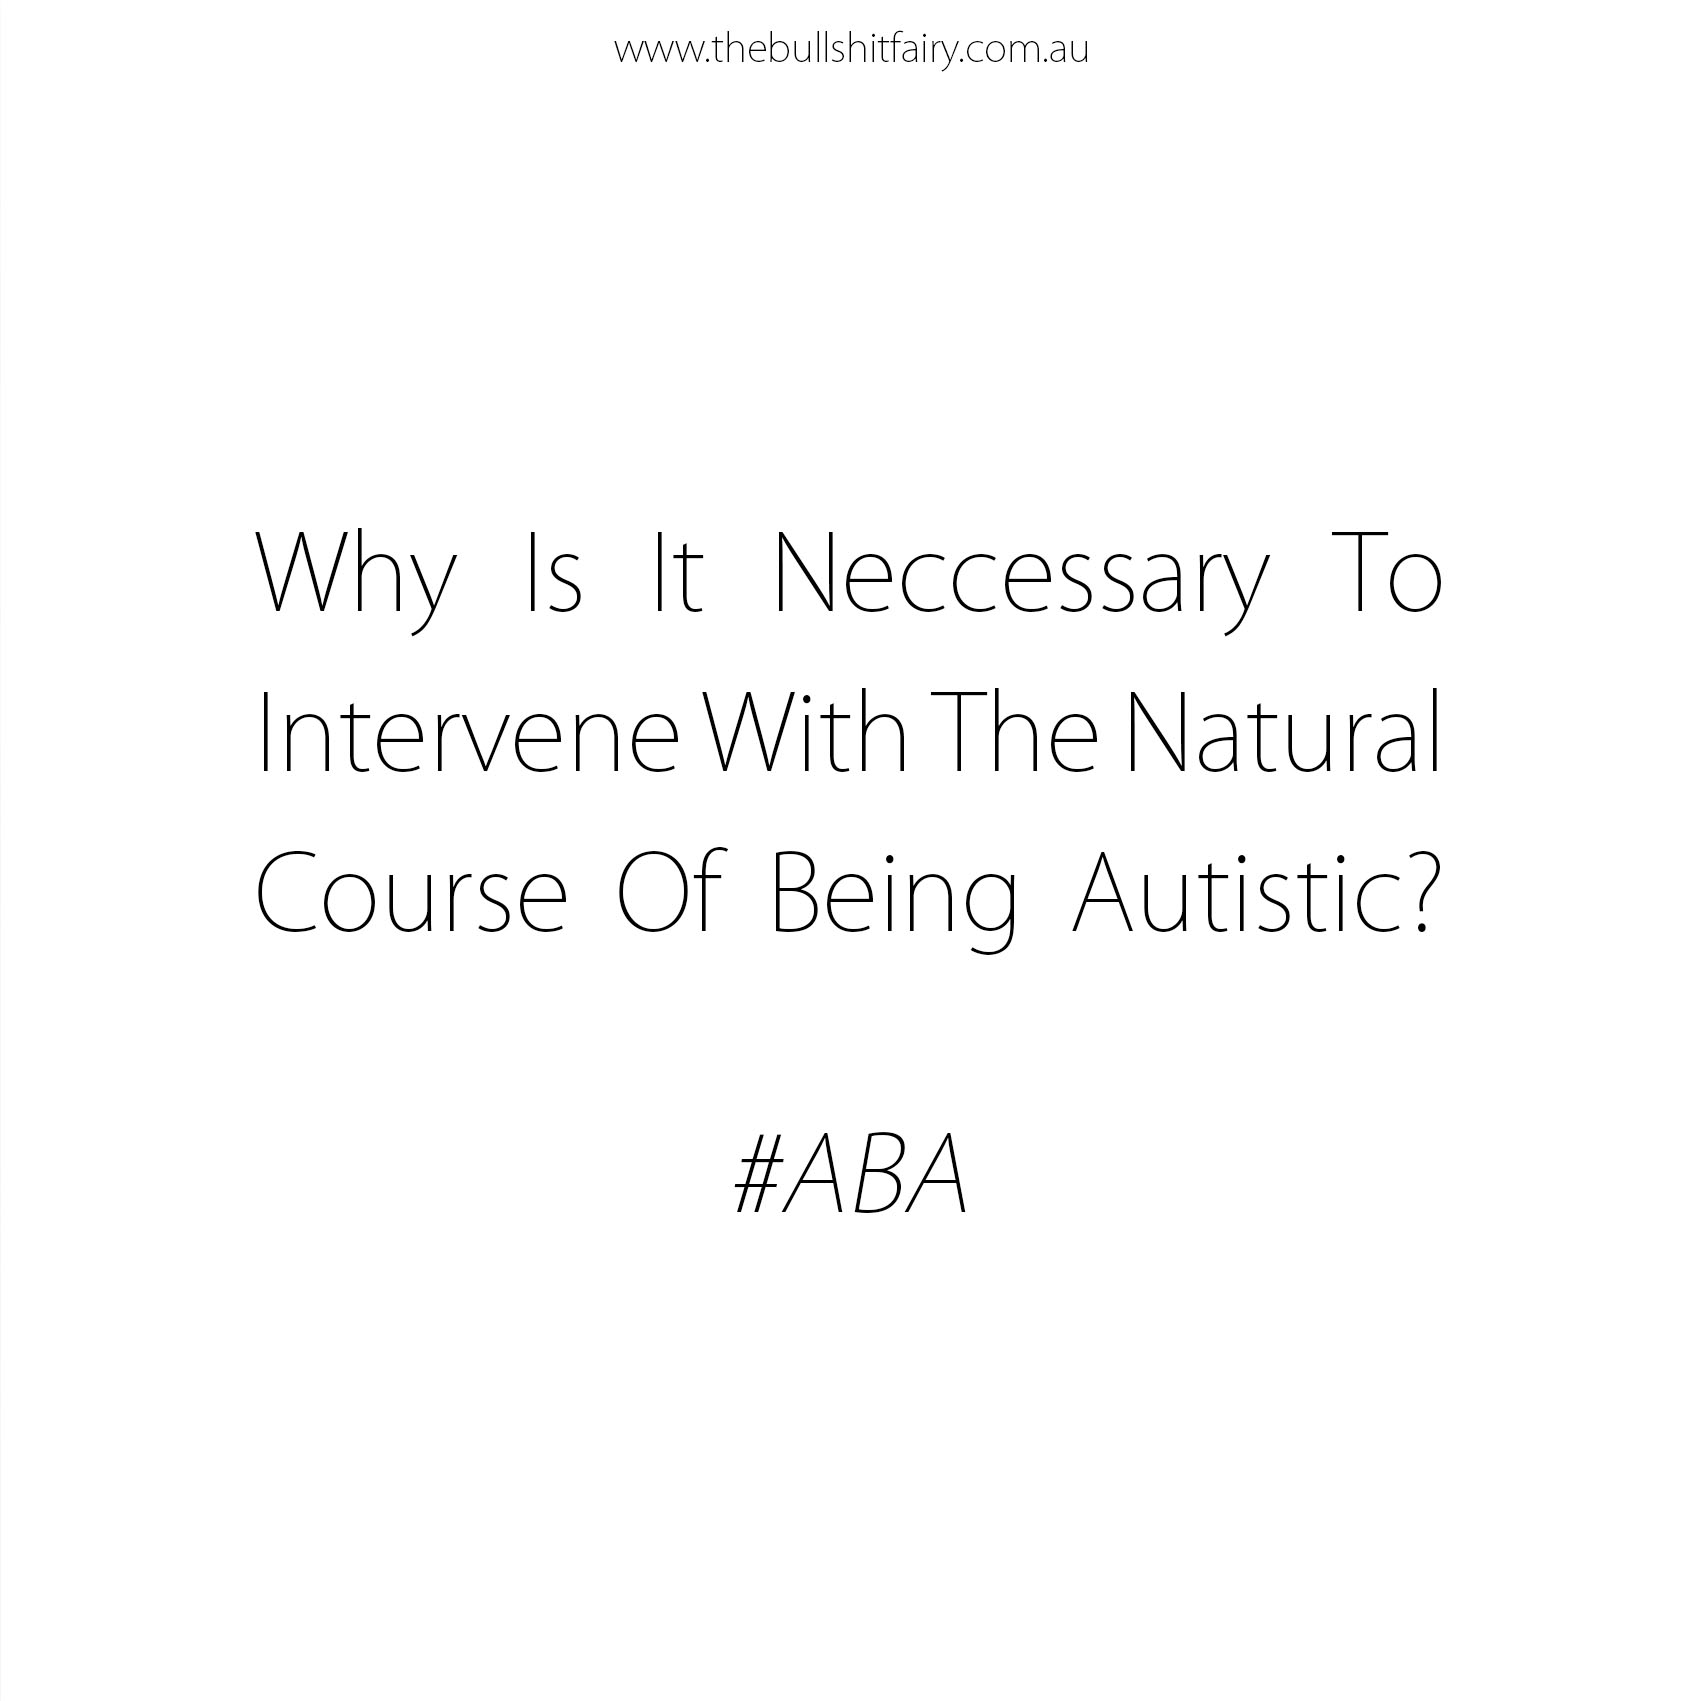 The Bullshit Fairy - Why Is It Necessary To Intervene With The Natural Course Of Being Autistic?